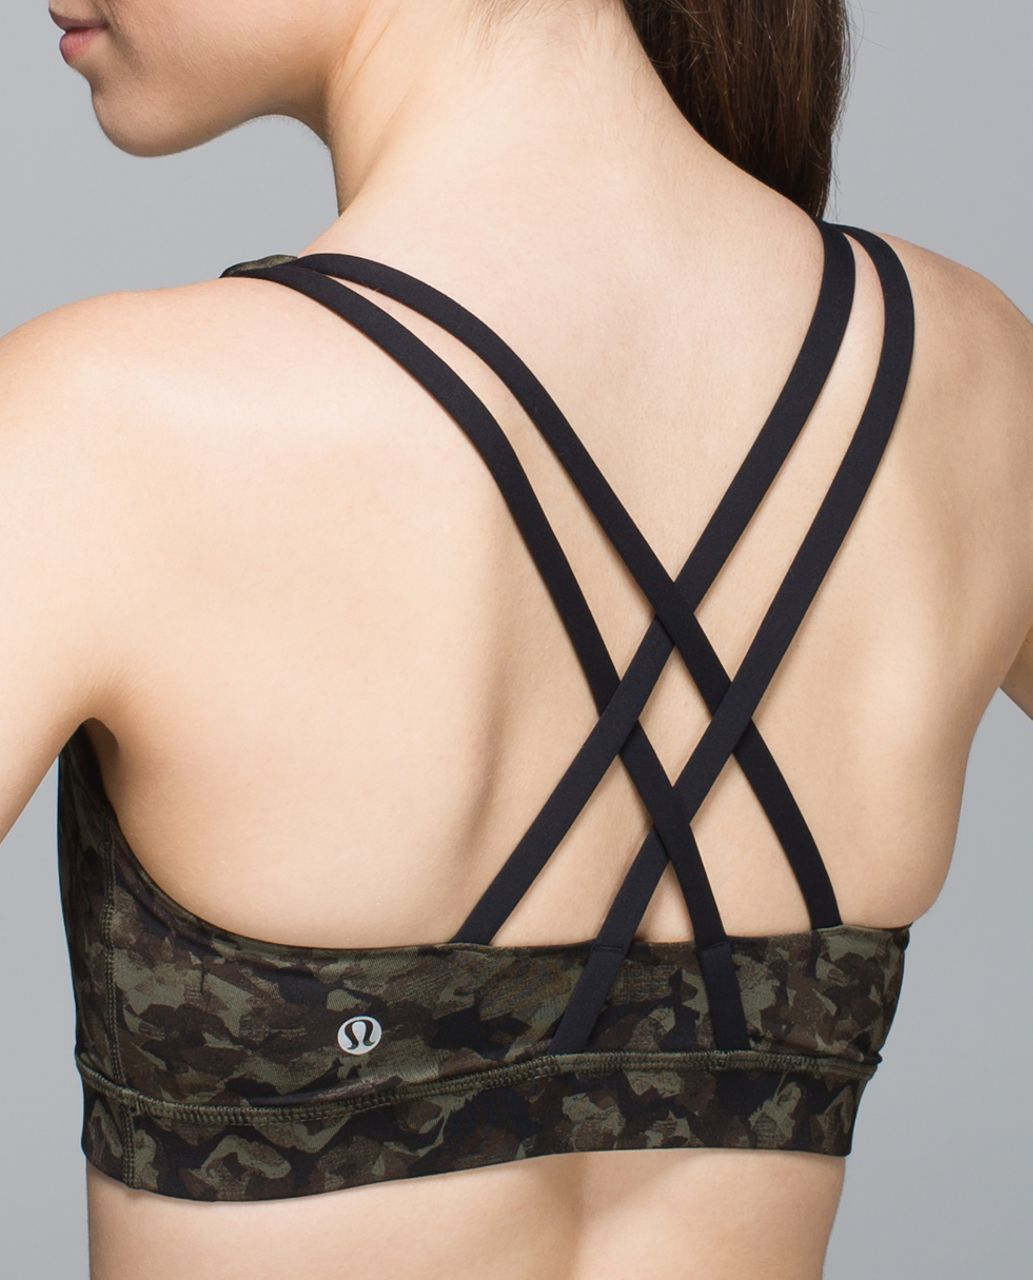 Lululemon Energy Bra - Mystic Jungle Fatigue Green Black / Black